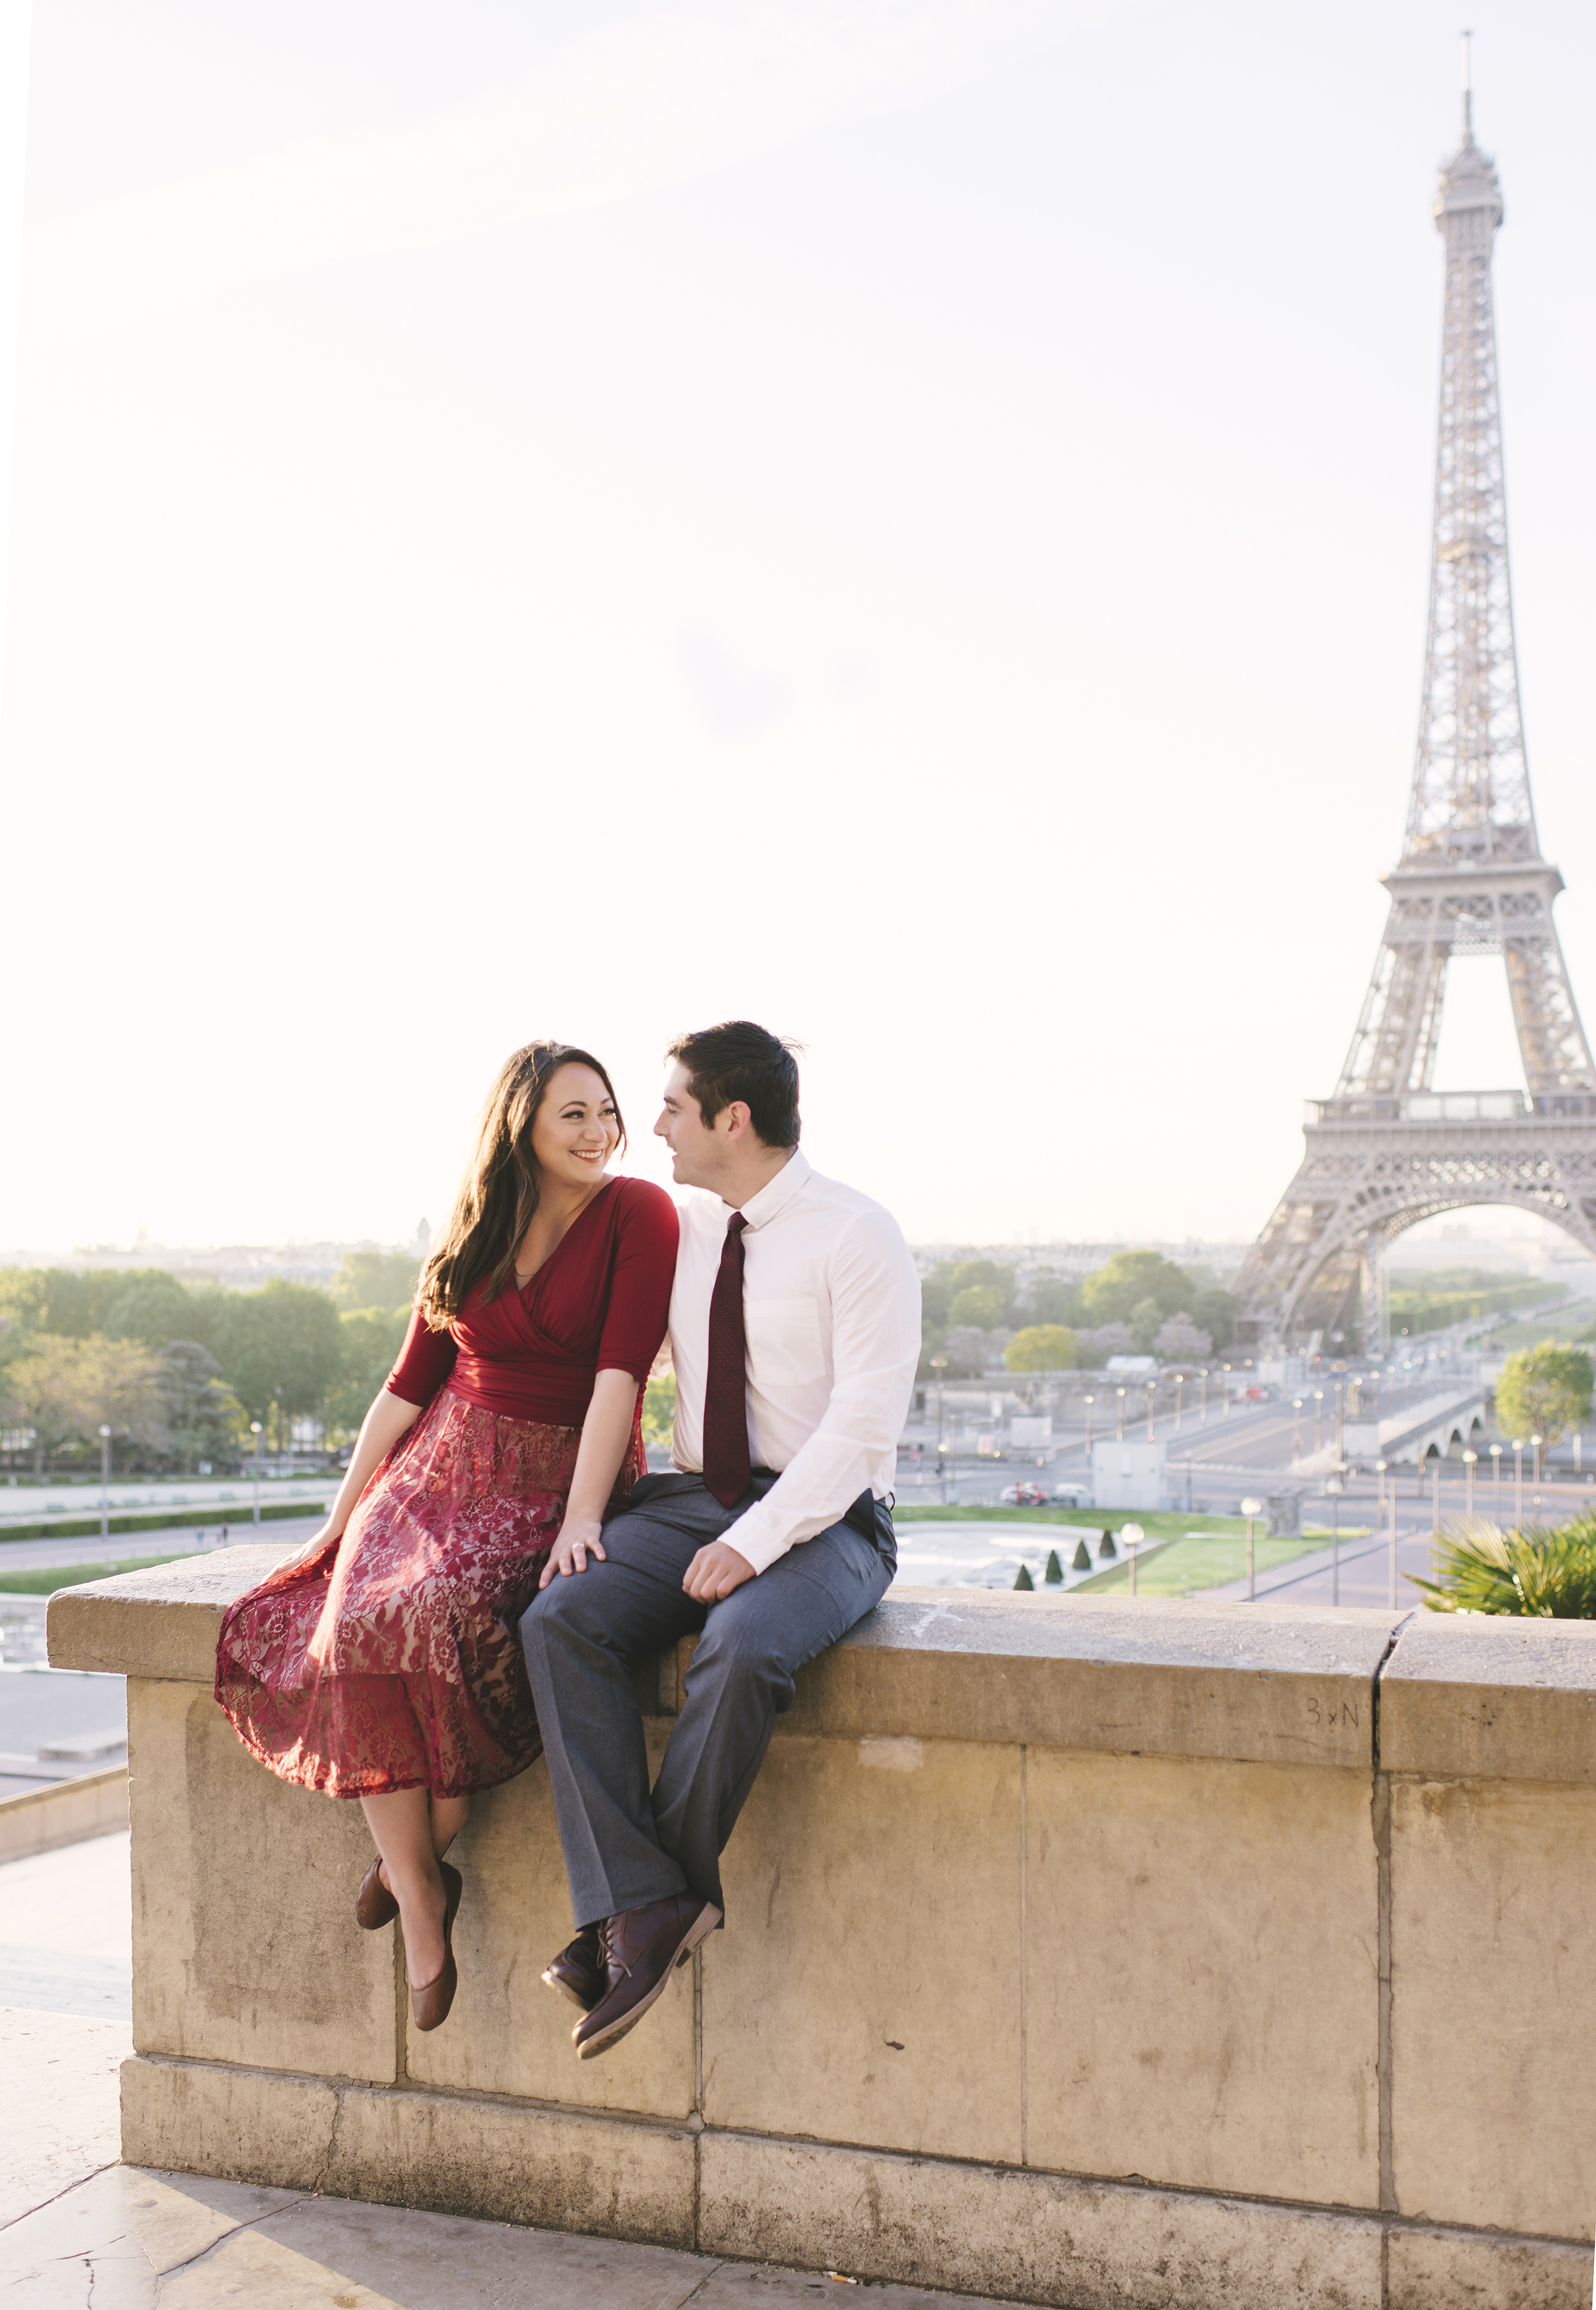 Couple-photoshoot-Anniversary-Paris-Eiffel-Tower-Trocadero037.jpg